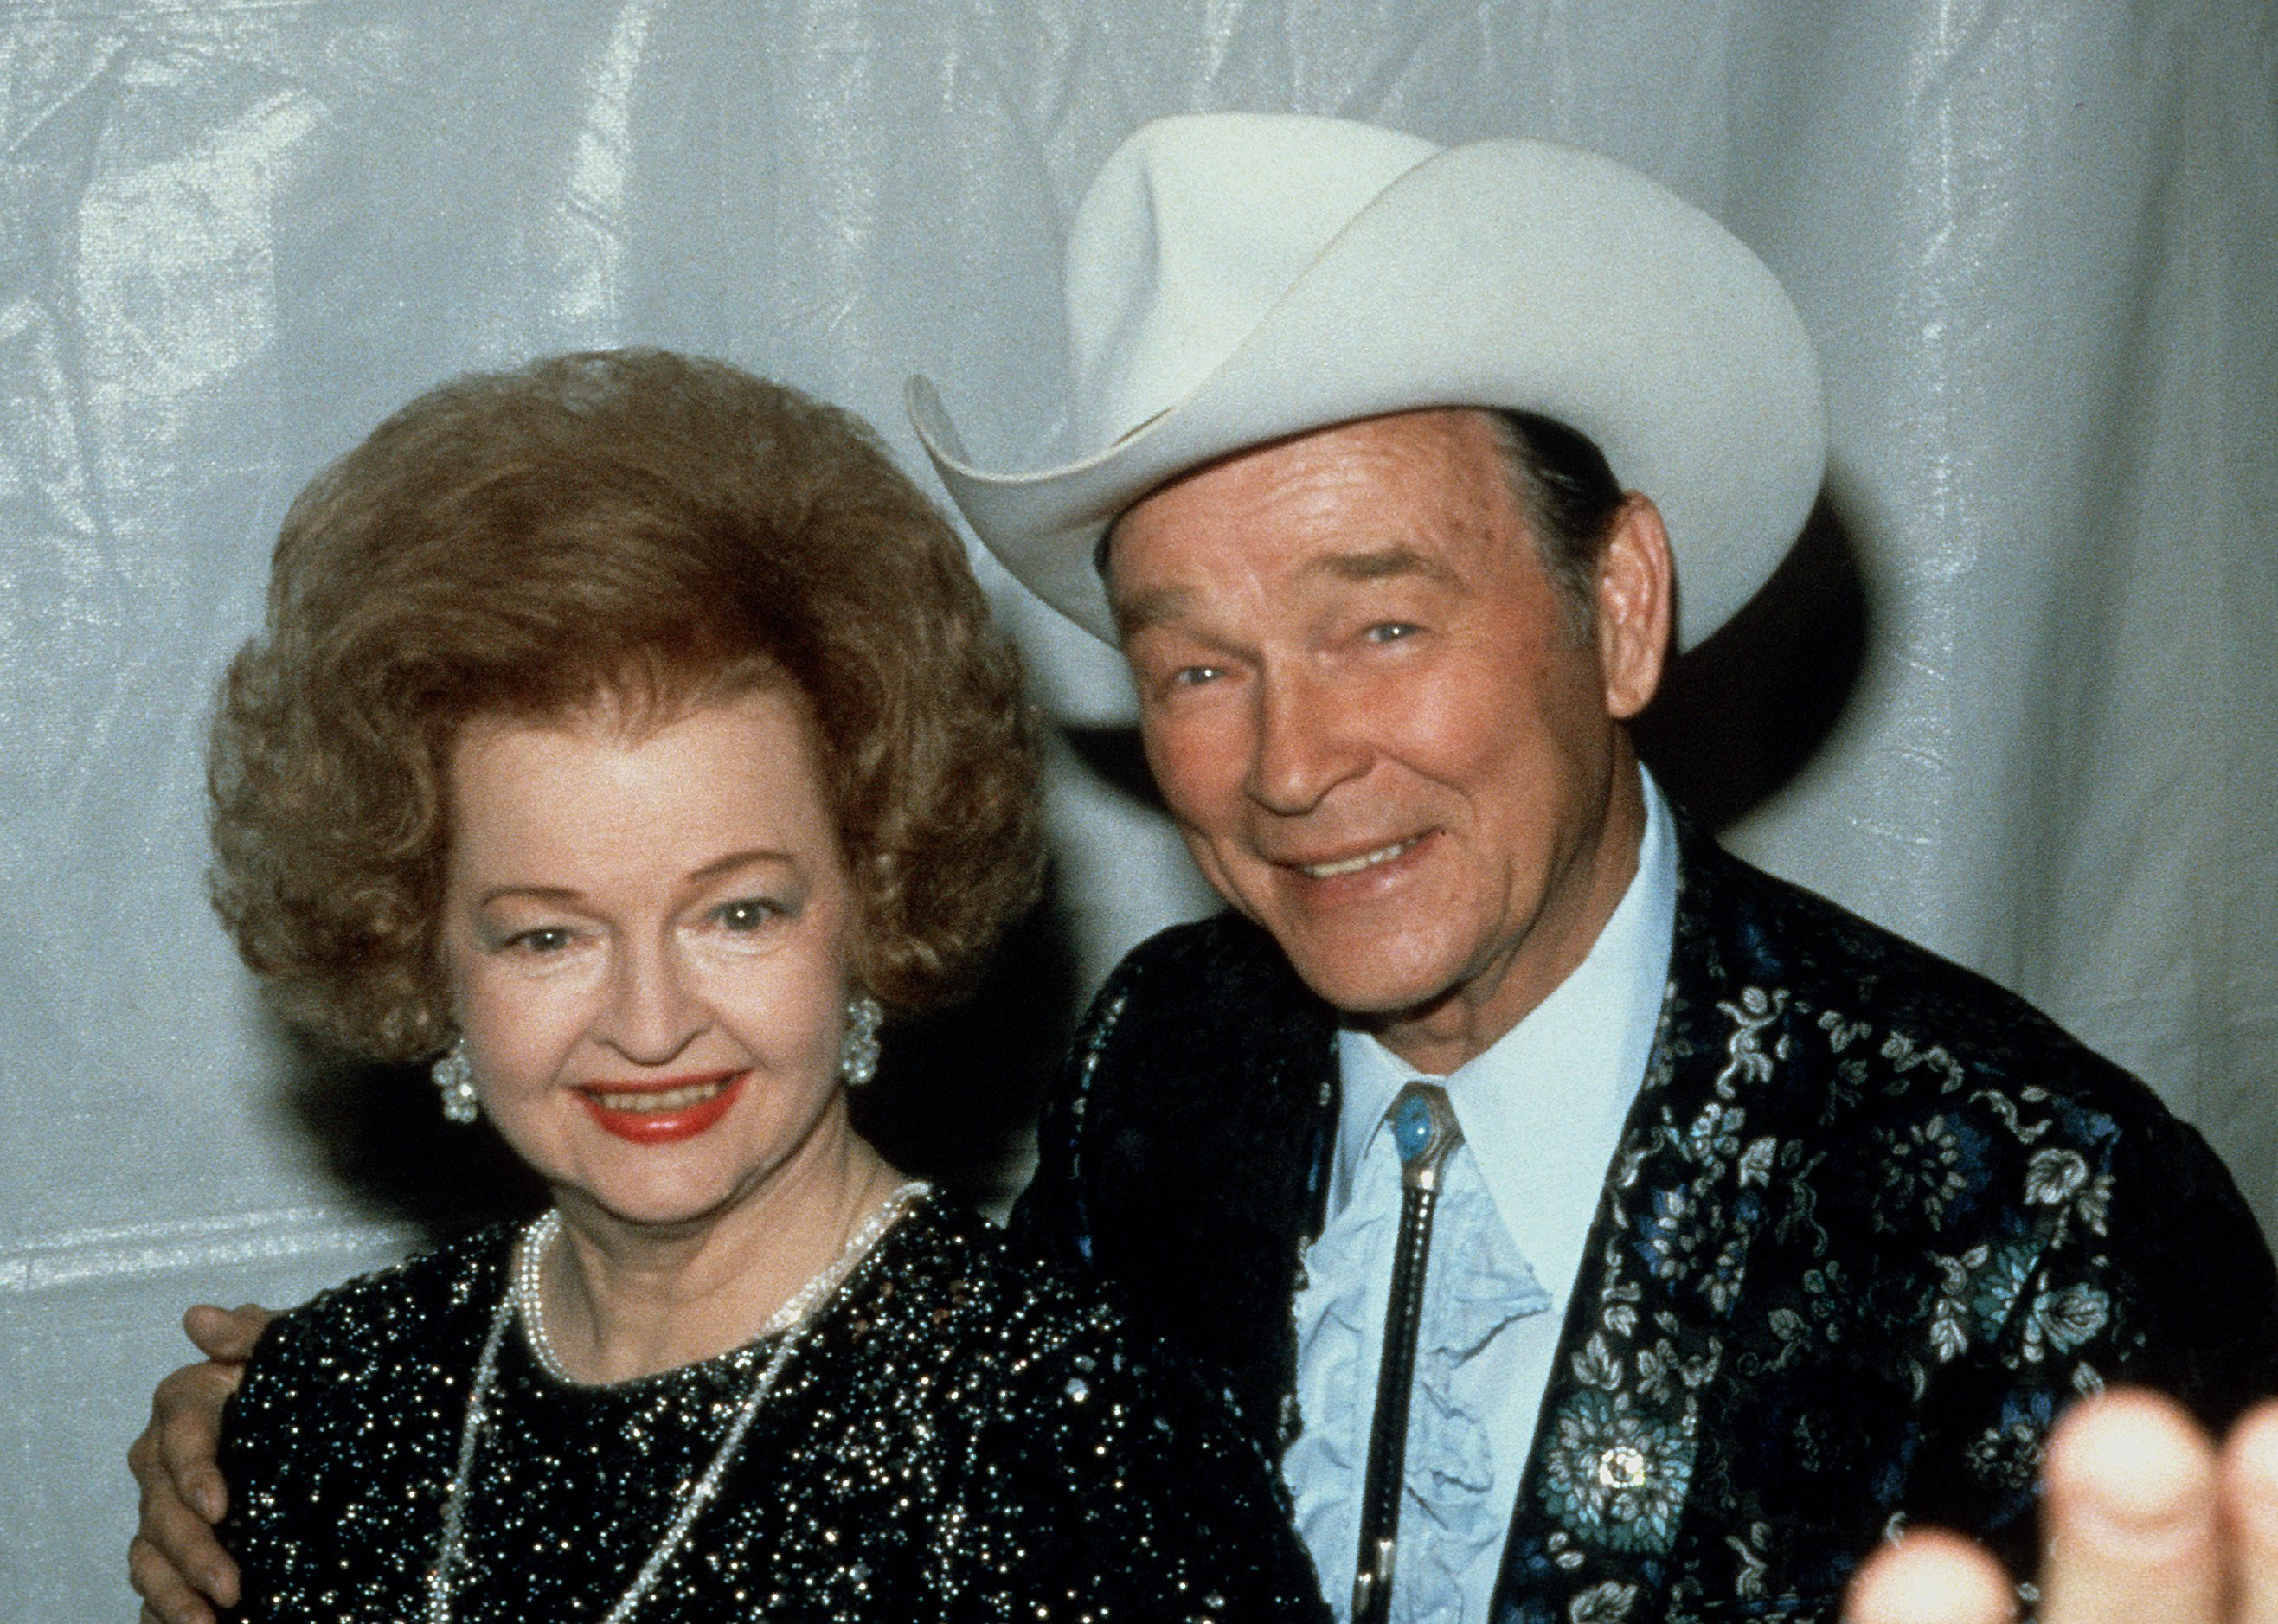 Roy Rogers (1911 - 1998) and his wife Dale Evans (1912 - 2001) pose circa 1986 in Dallas, USA. | Source: Getty Images.